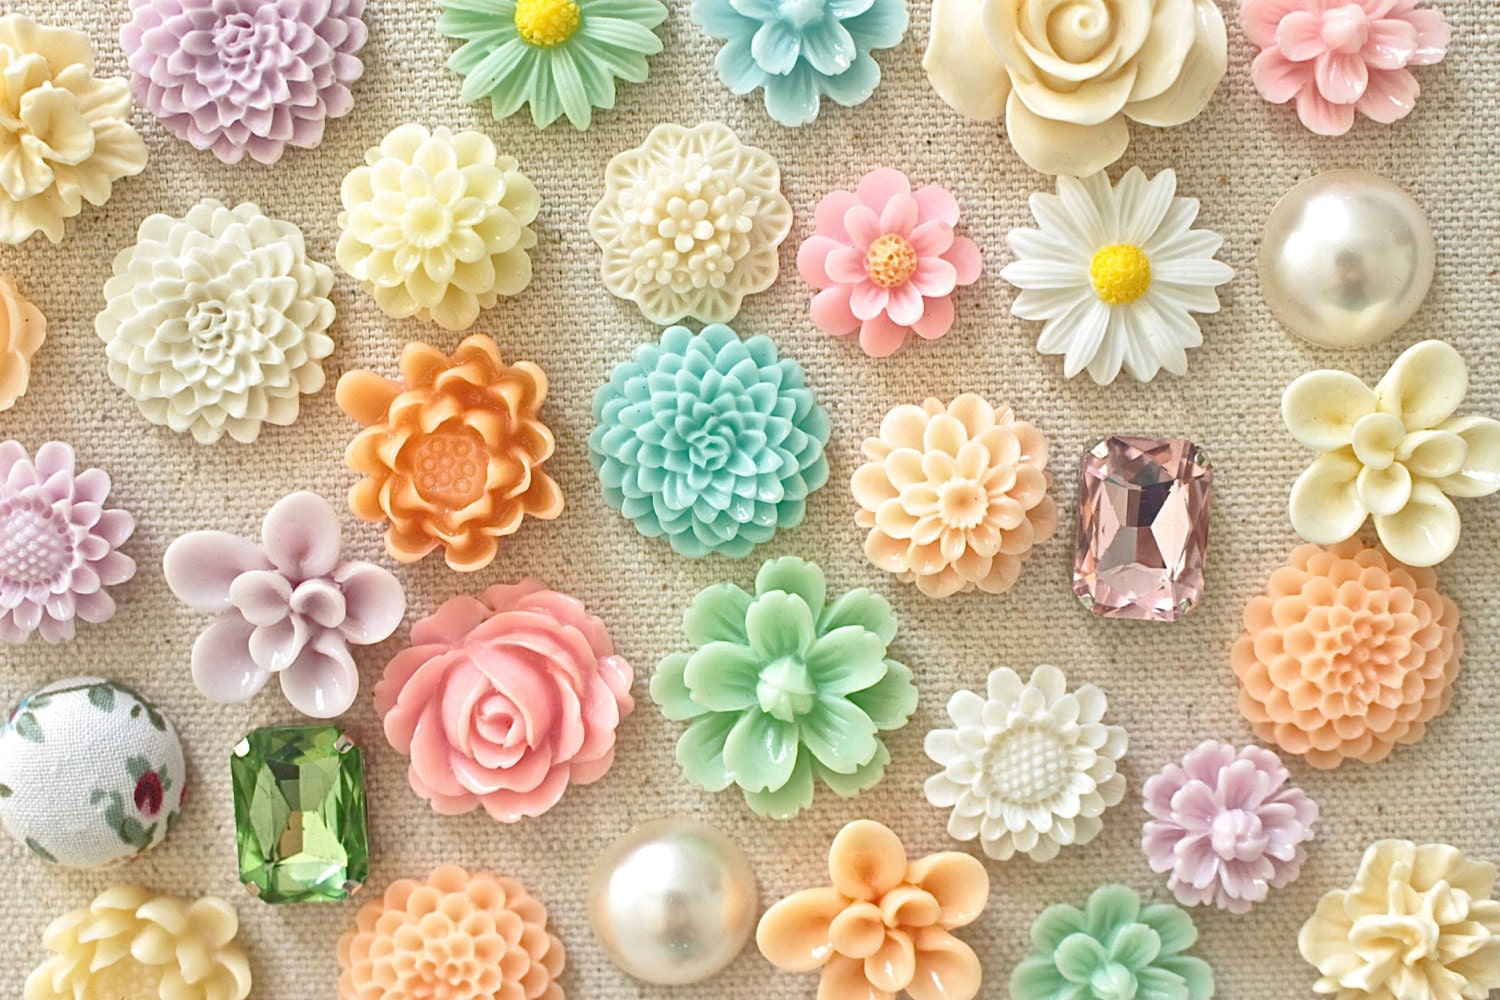 Soft Pastel Flower Thumb Tacks Mixed Pastel Color Floral Push